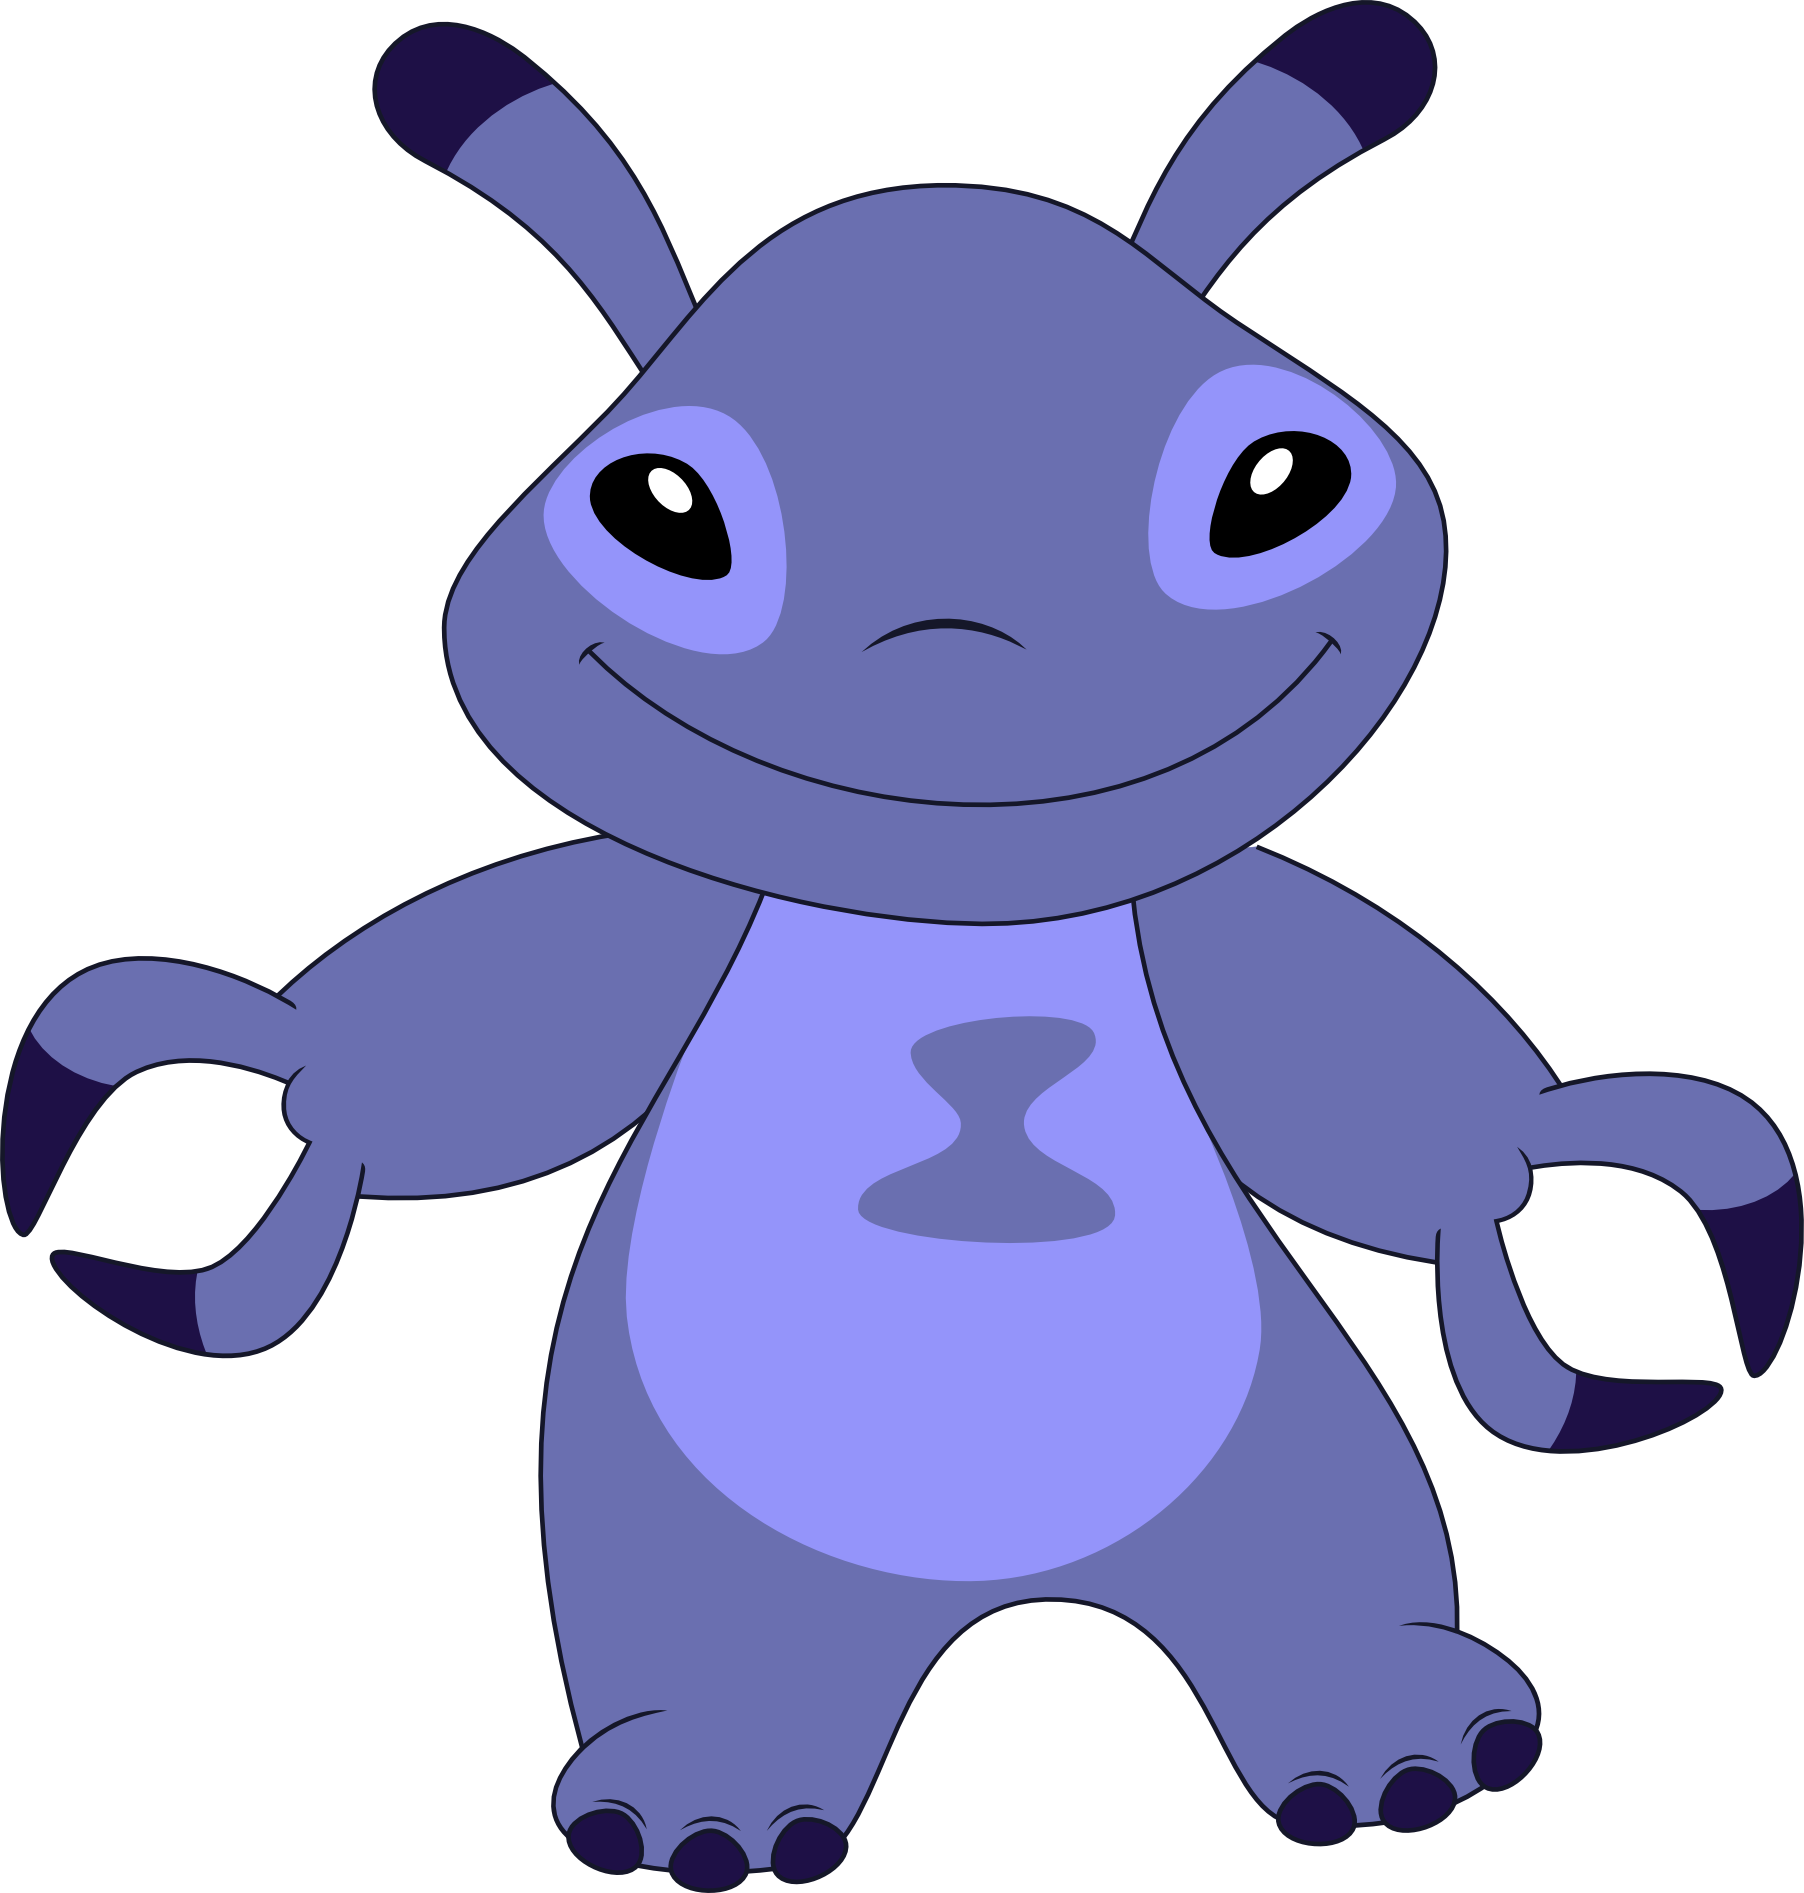 Lilo and stitch characters png. Image vialet by kaylathehedgehog